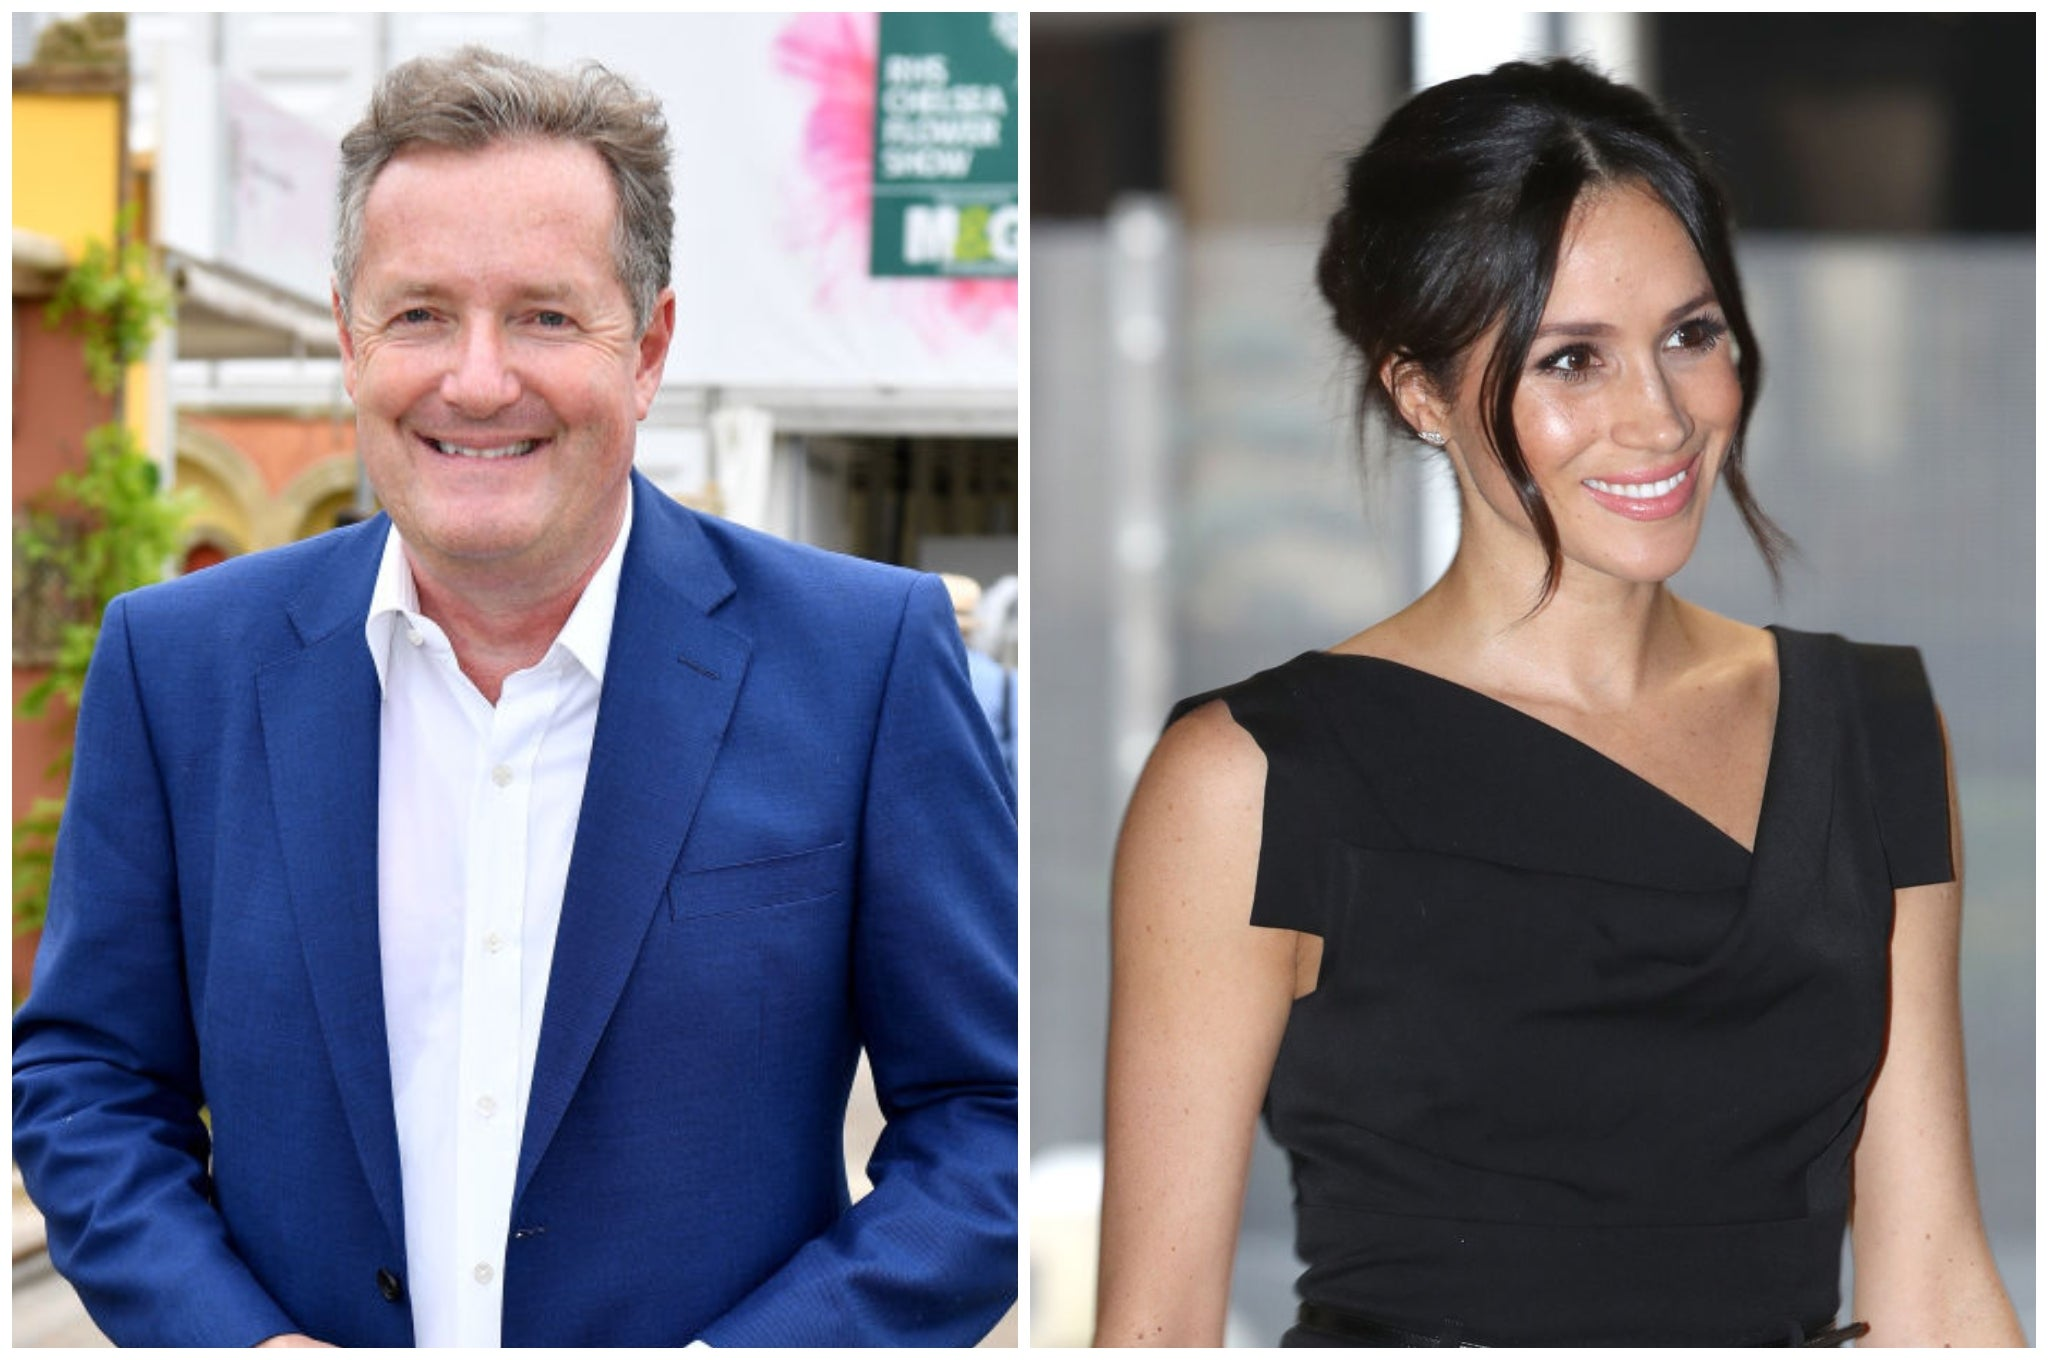 Piers Morgan responds after being told Meghan Markle criticism makes him look 'ugly' – 'I took it too far'